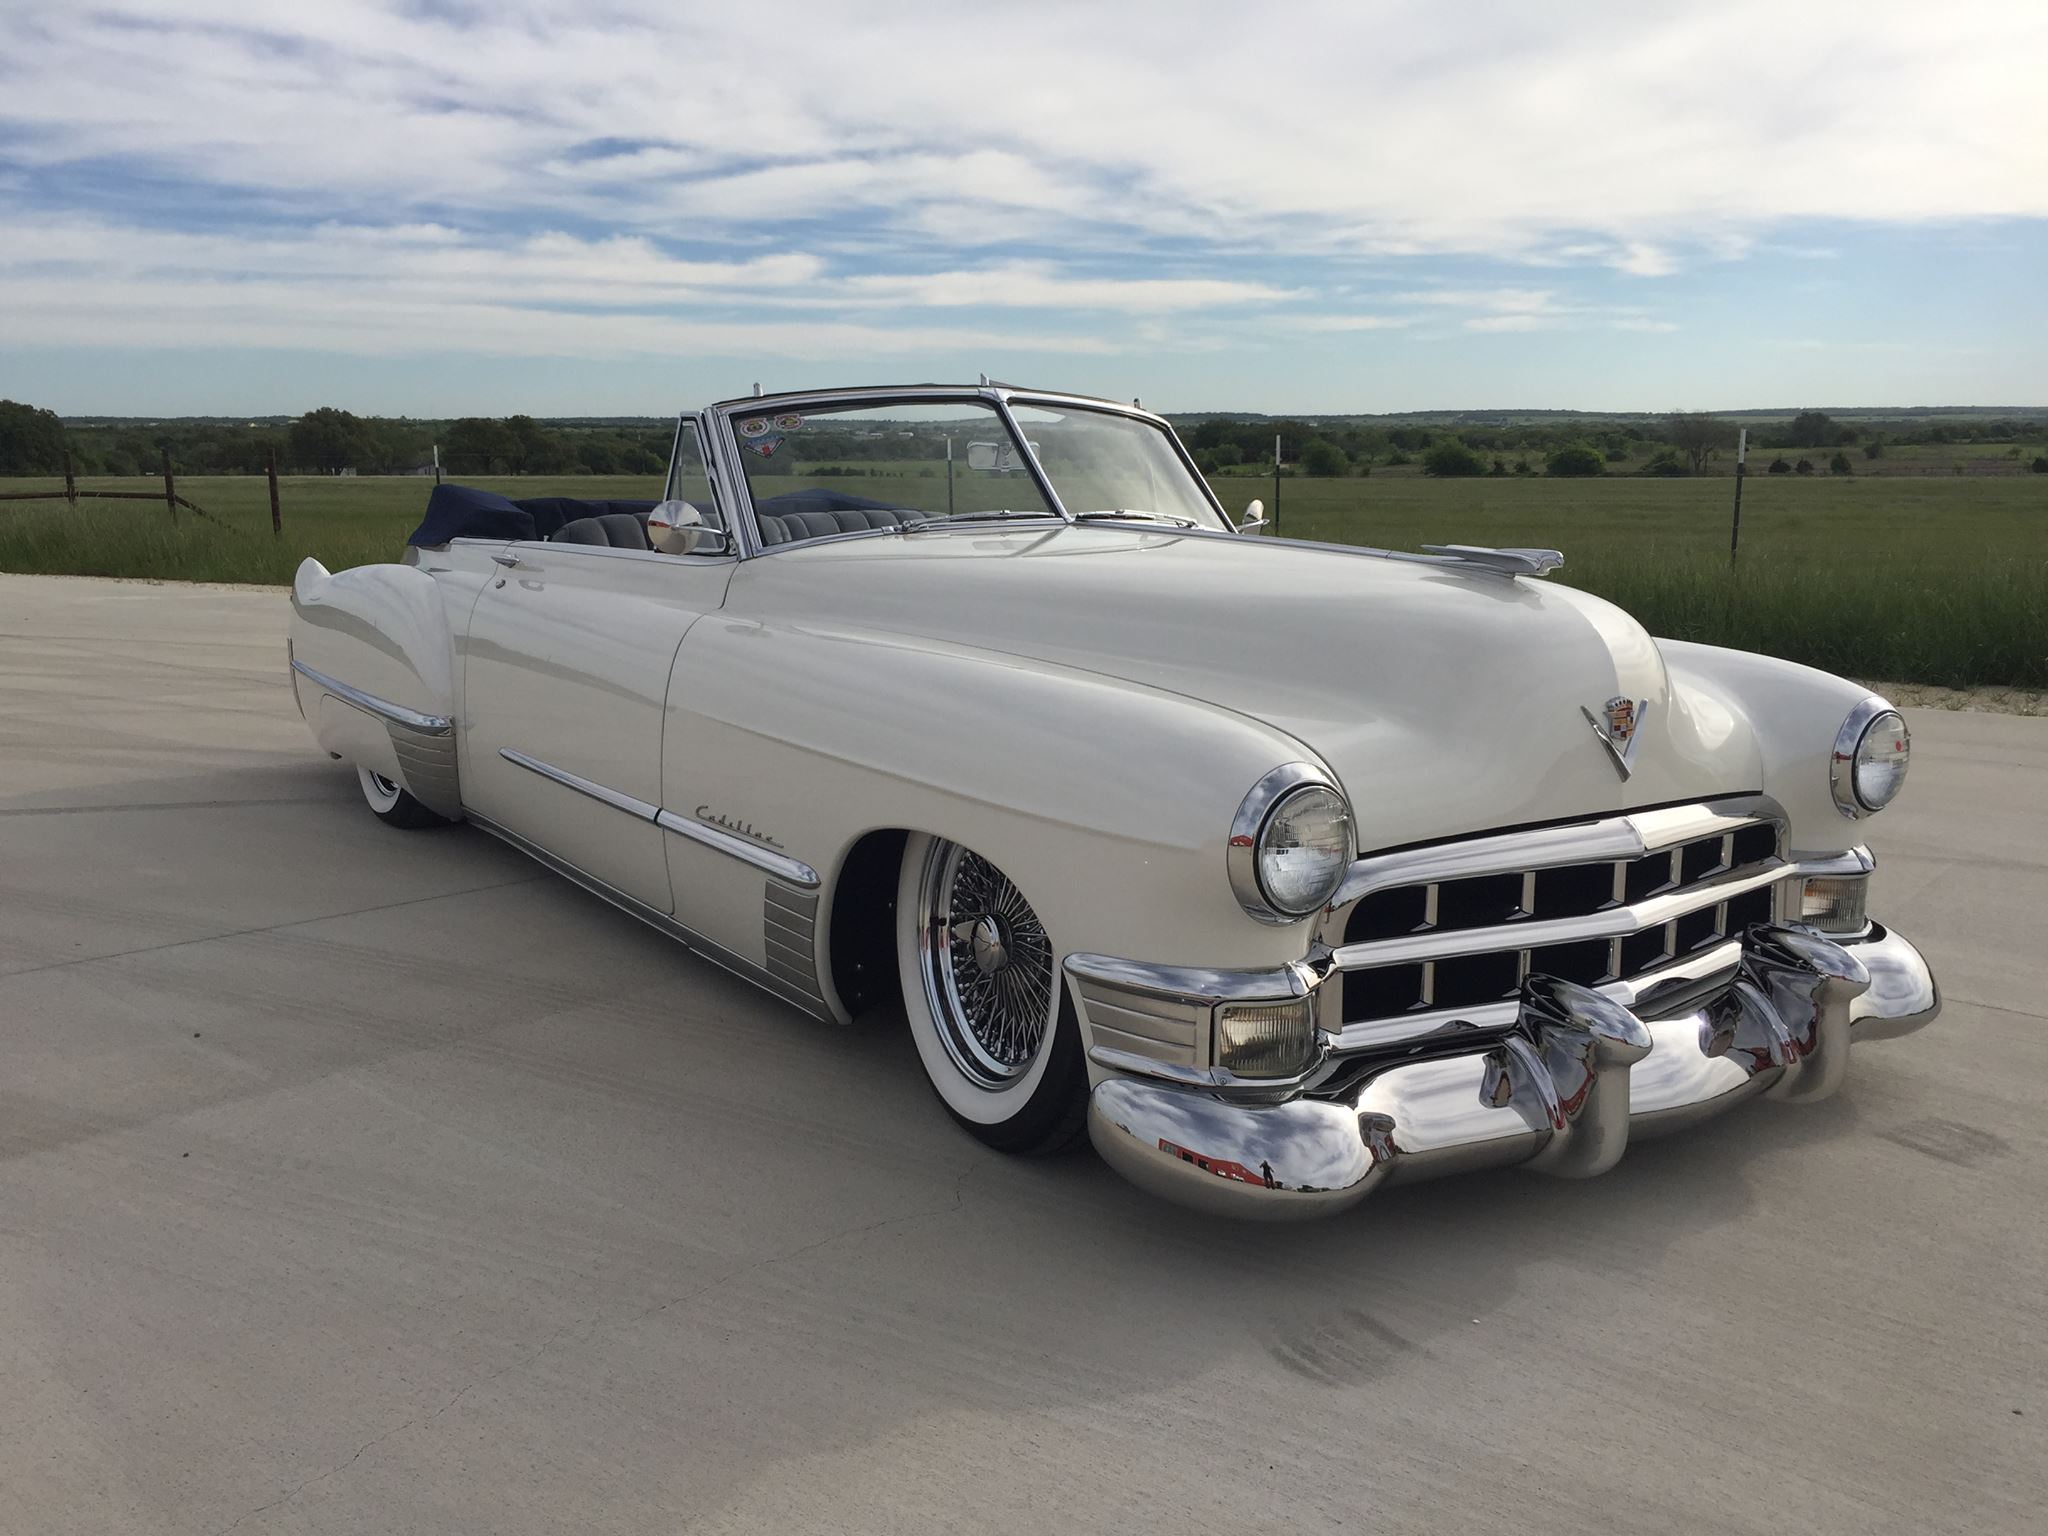 1949 cadillac series 62 with a supercharged lsx engine swap depot hyundai wiring harness this 1949 cadillac series 62 was built by harold chapman for his wife tracy at his company customs and hot rods of andice you might remember their amazing